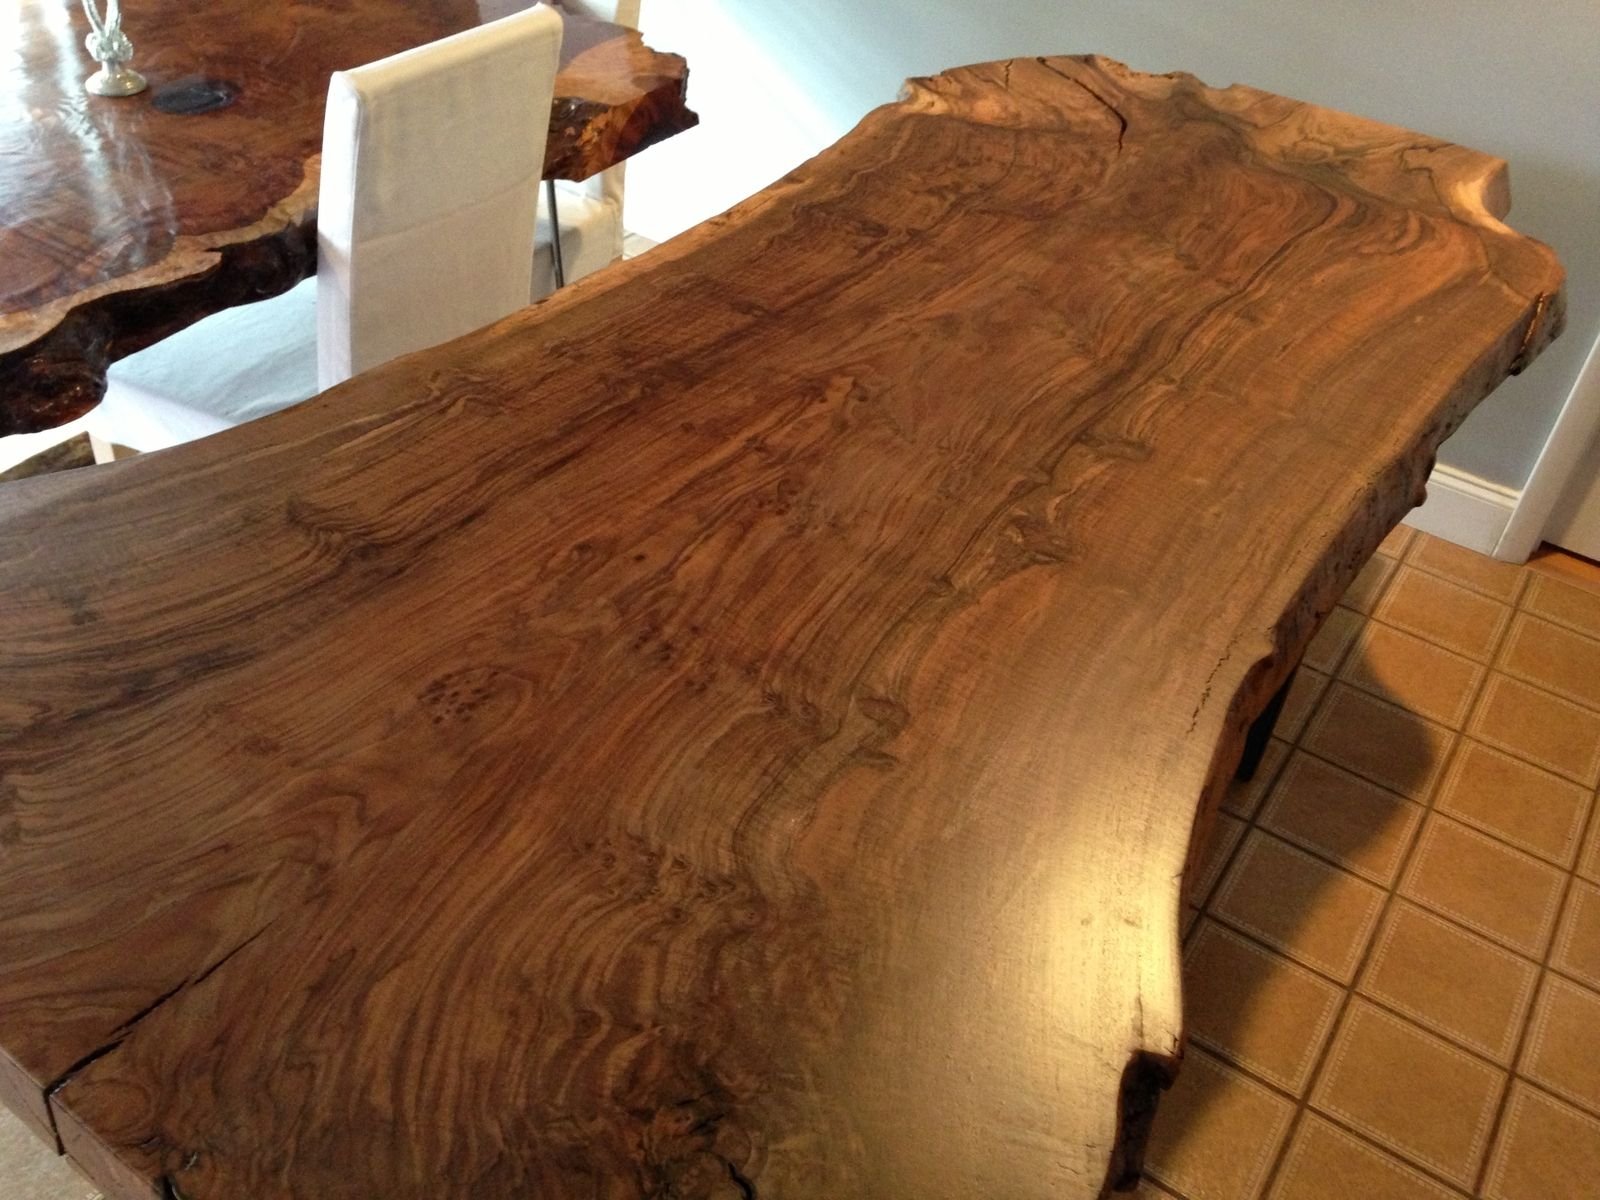 Handmade Live Edge Claro Walnut Dining Table By Ozma Design Custommade